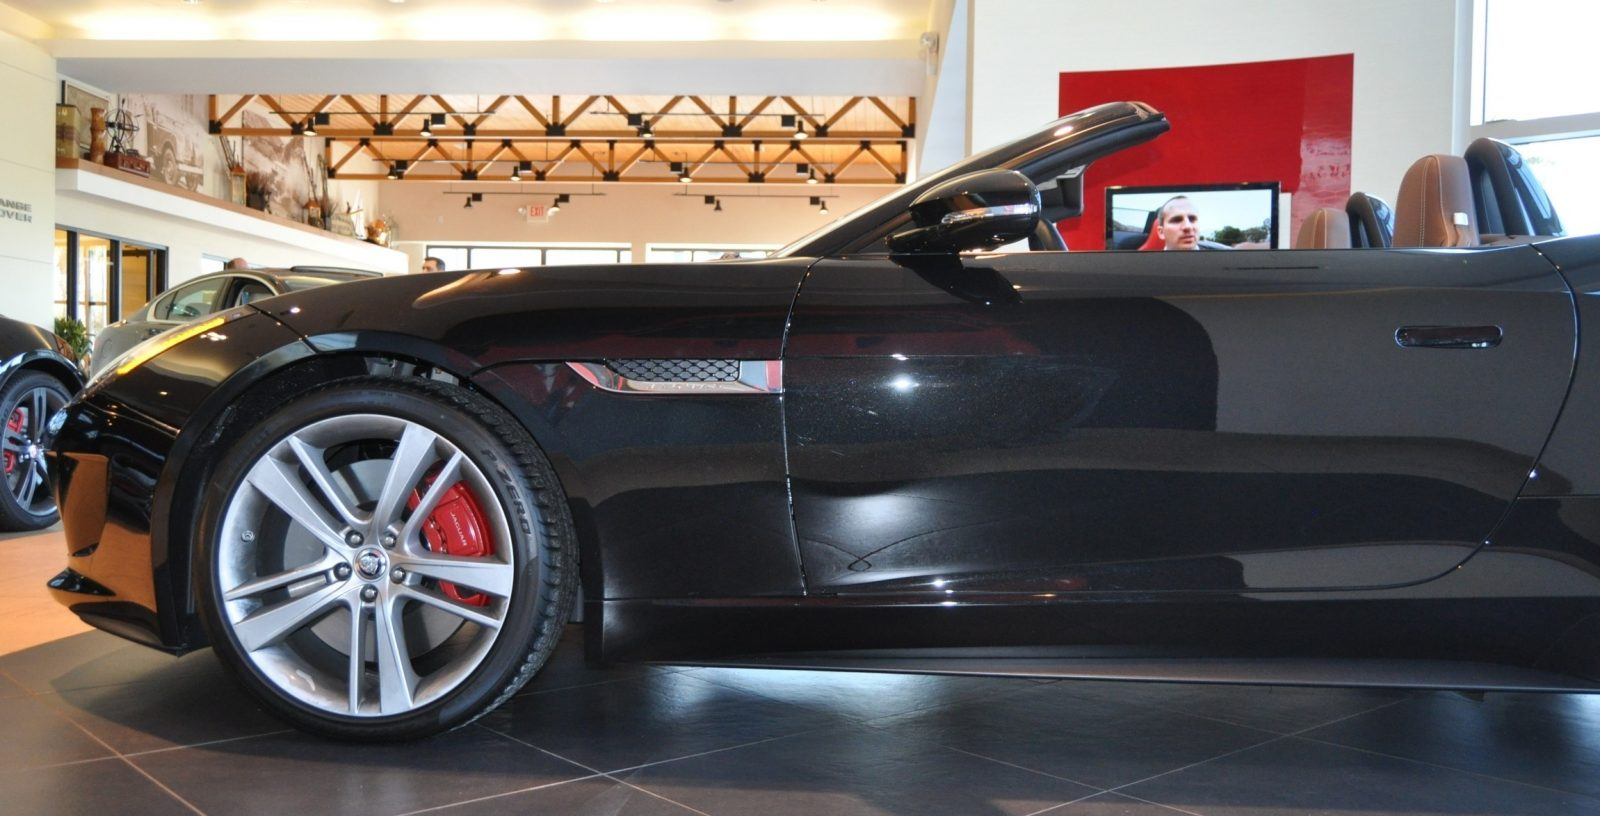 2014 Jaguar F-type S Cabrio - LED Lighting Demo and 60 High-Res Photos10